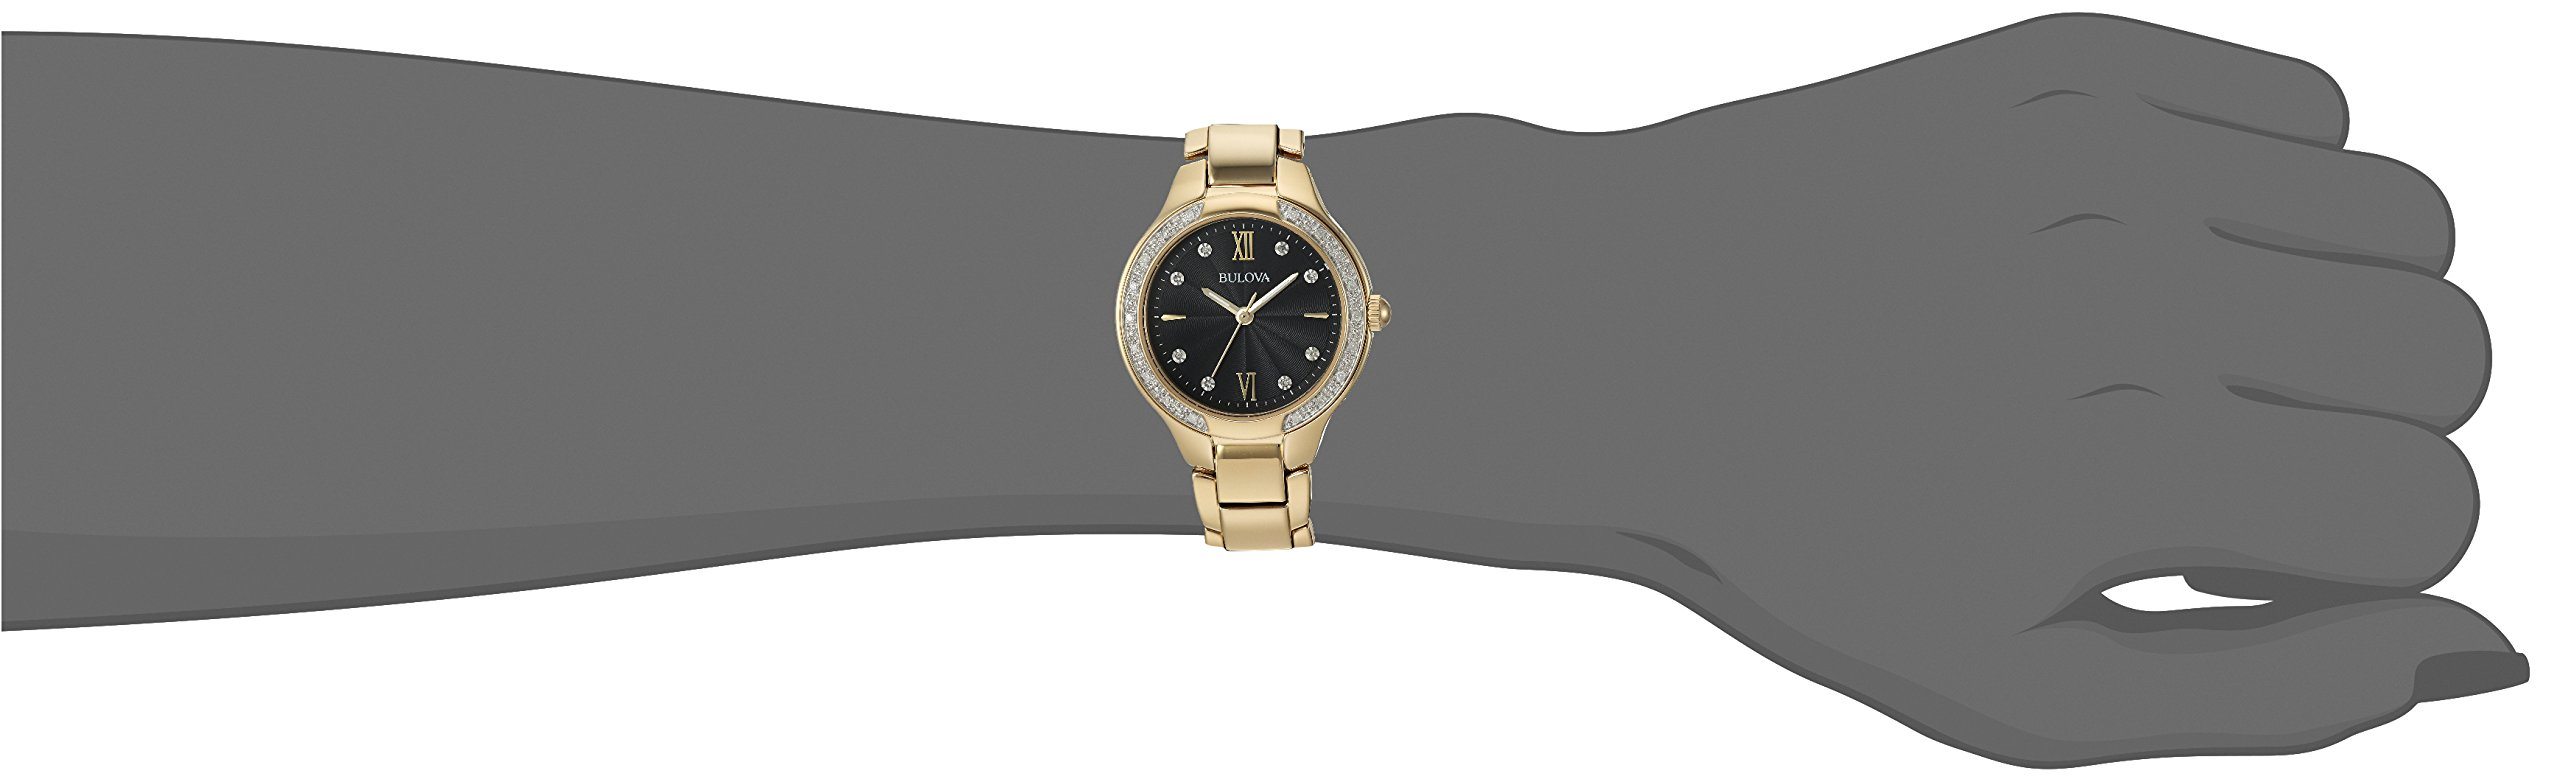 Bulova Women's Quartz and Stainless-Steel Casual Watch, Color:Gold-Toned (Model: 98R222) by Bulova (Image #2)